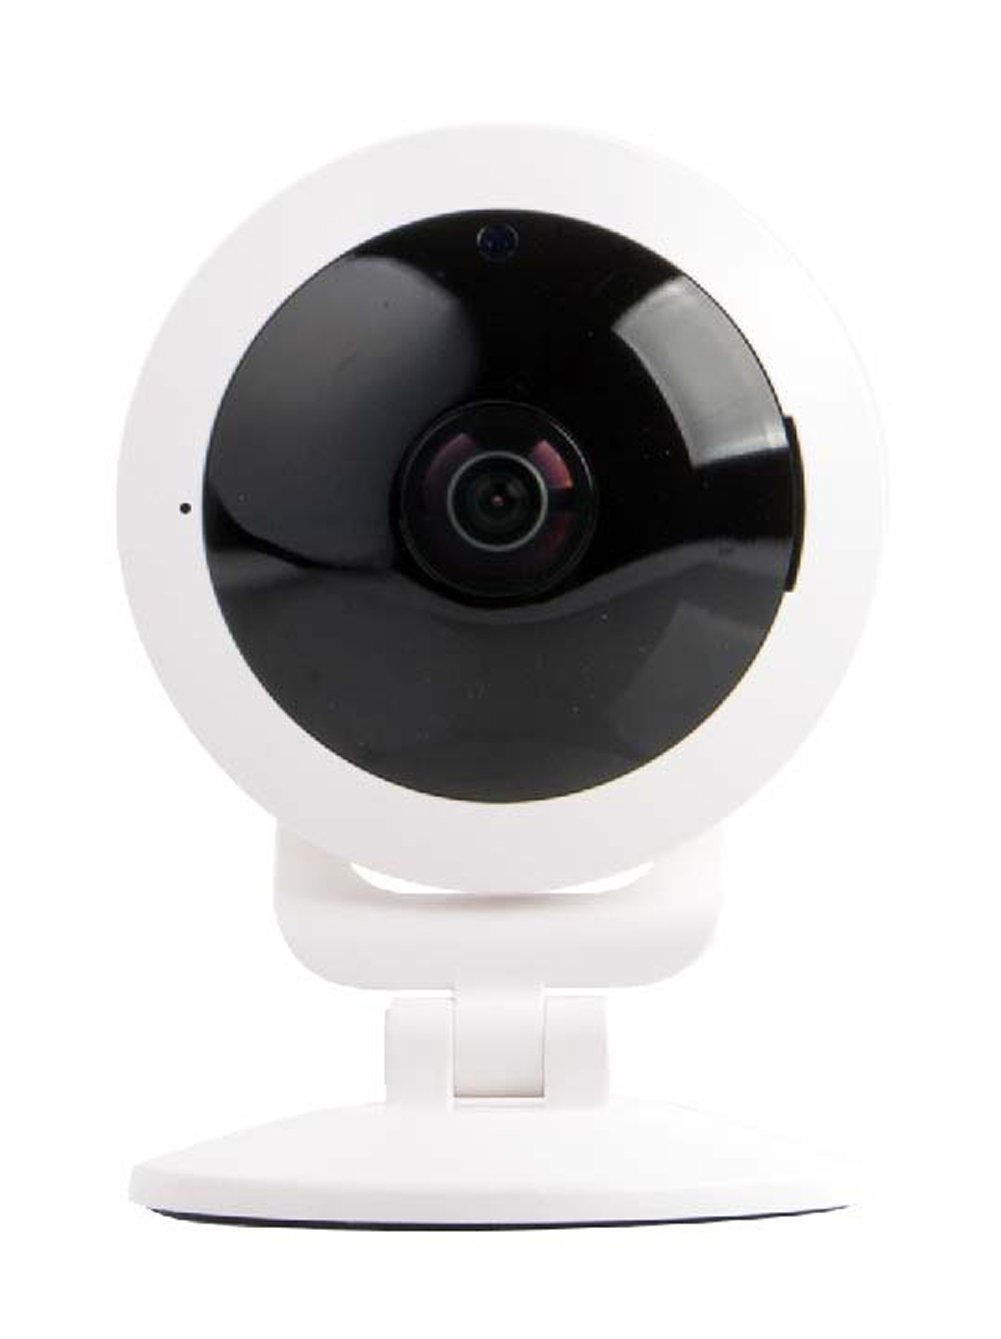 Vivitar IPC117-WHT 360 Wide Angle 1080p HD Wi-Fi Smart Home Camera with Motion Detection, Cloud Backup, Night Vision, Child and Pet Monitor, Two-Way Audio, iOS and Android App for Home Or Office Use by Vivitar